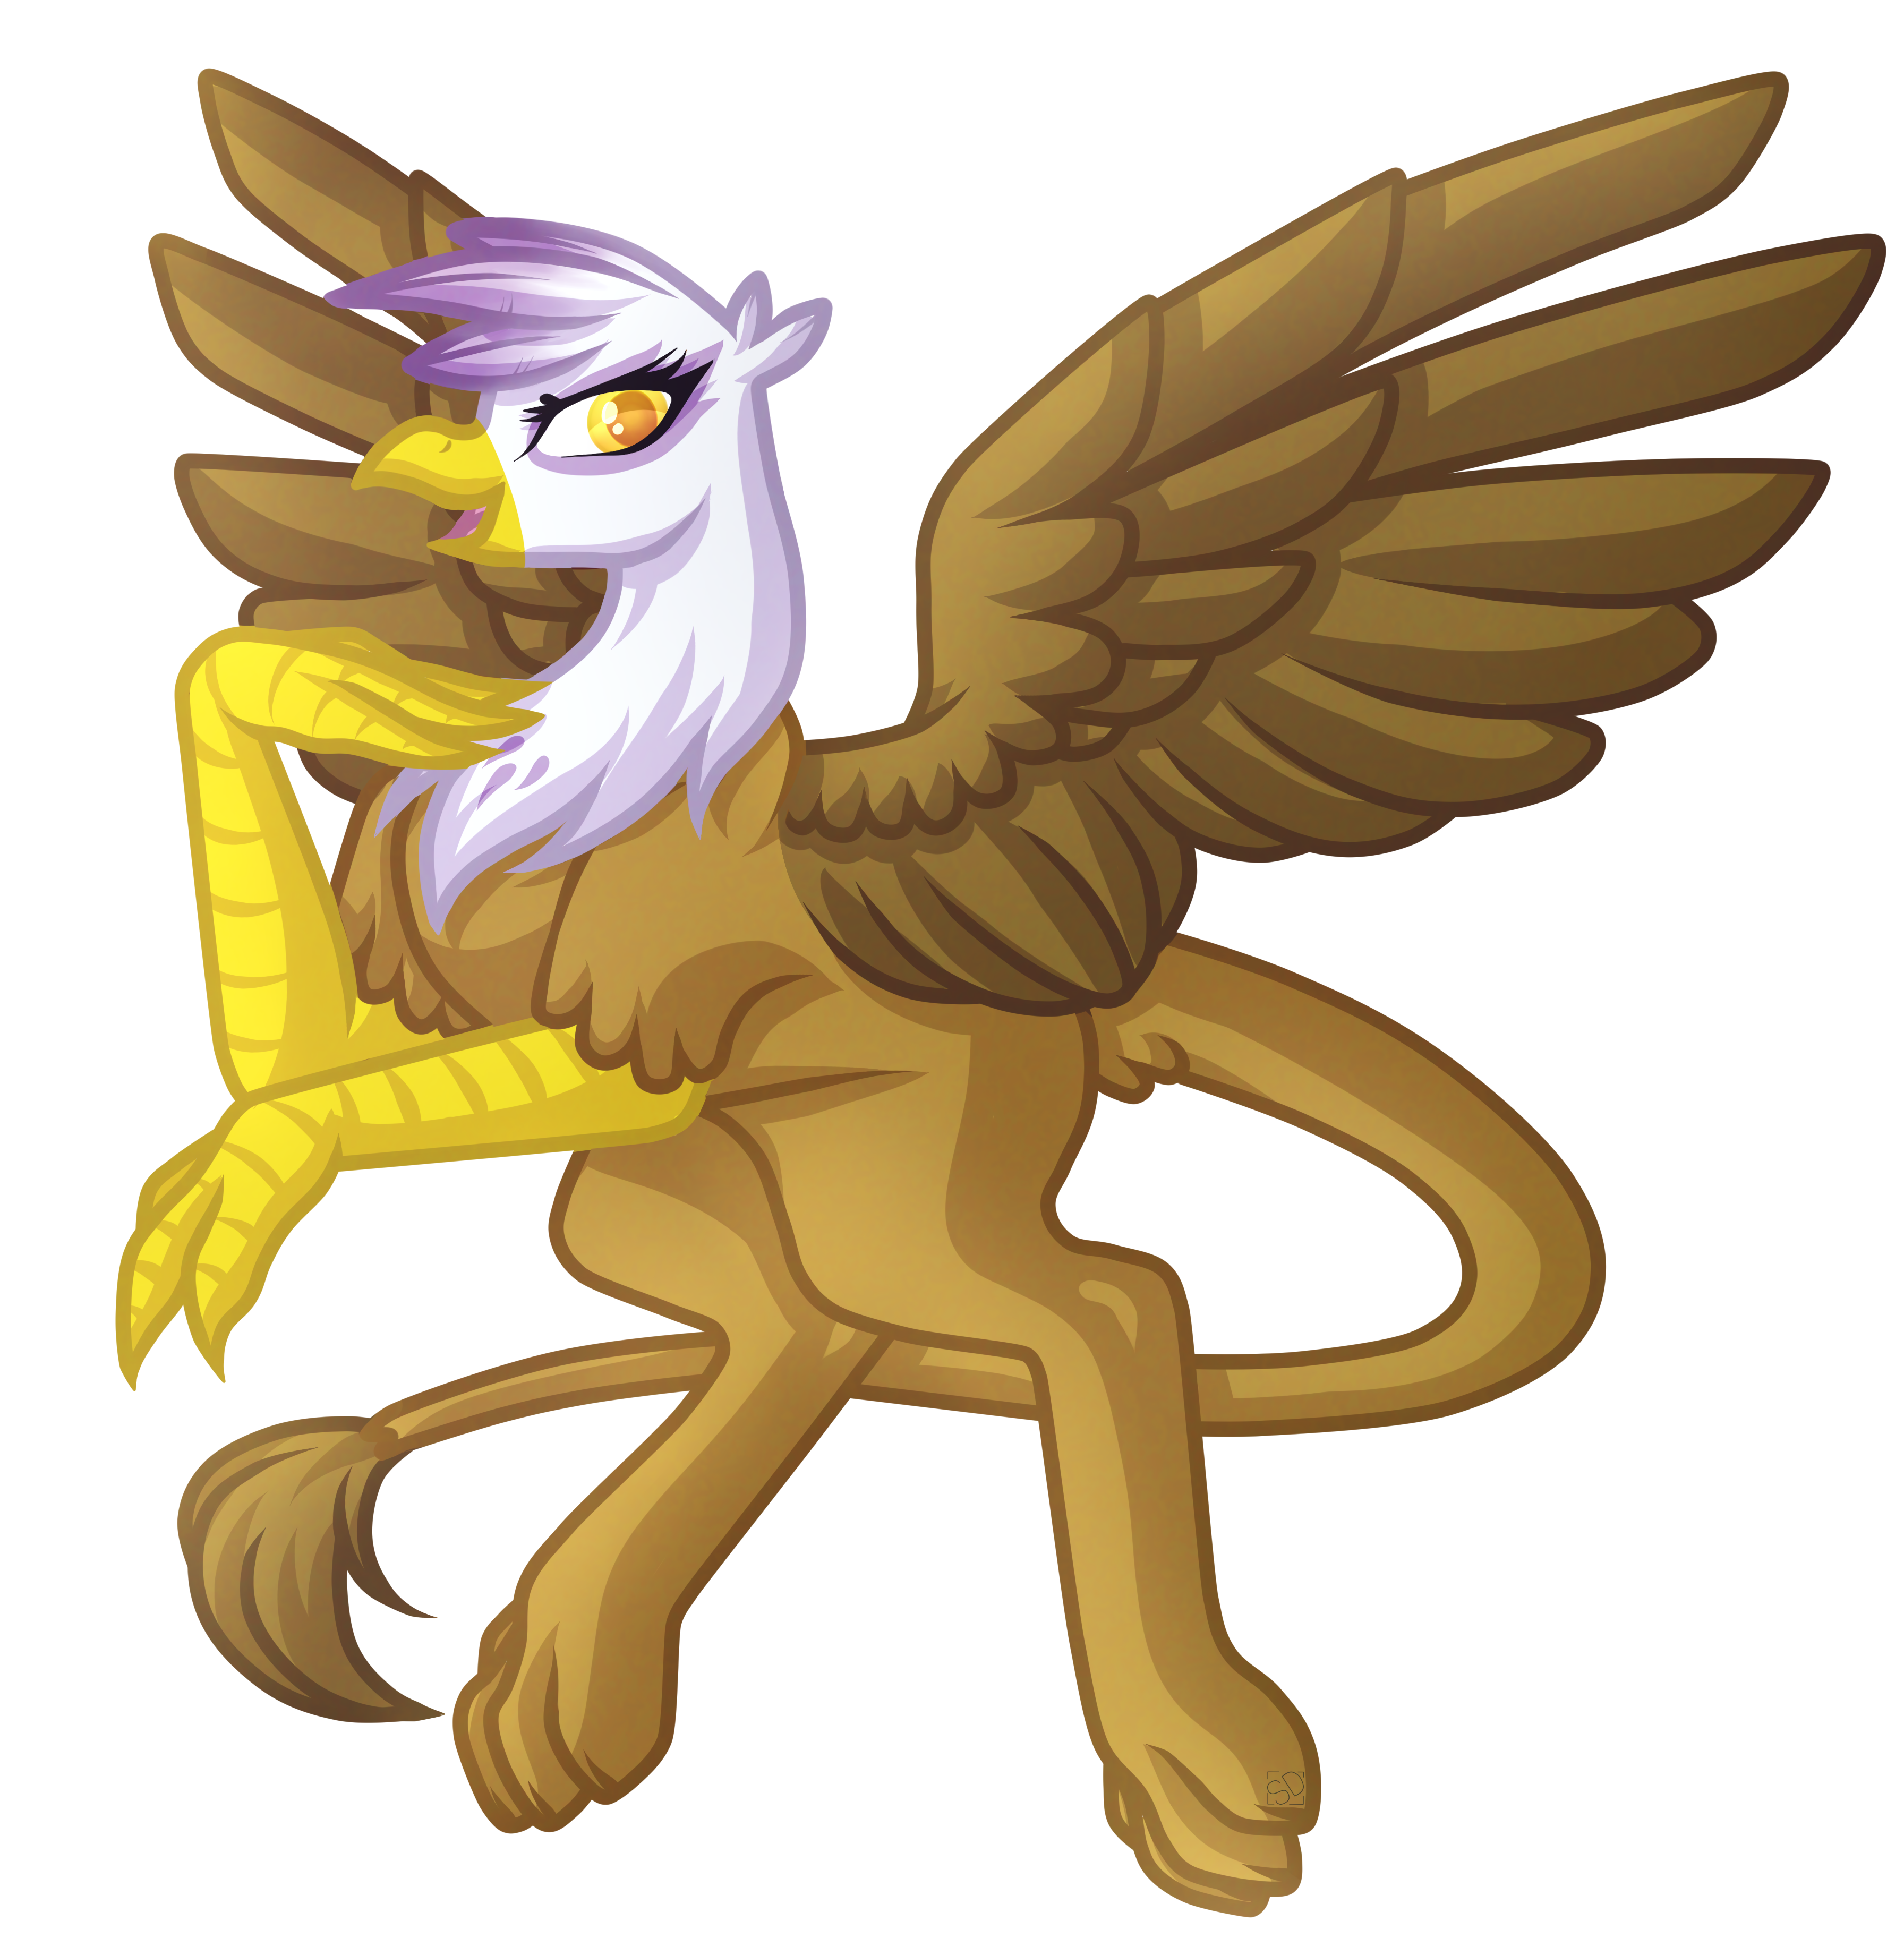 Request gilda the griffin by amazing artsong on deviantart for The griffin